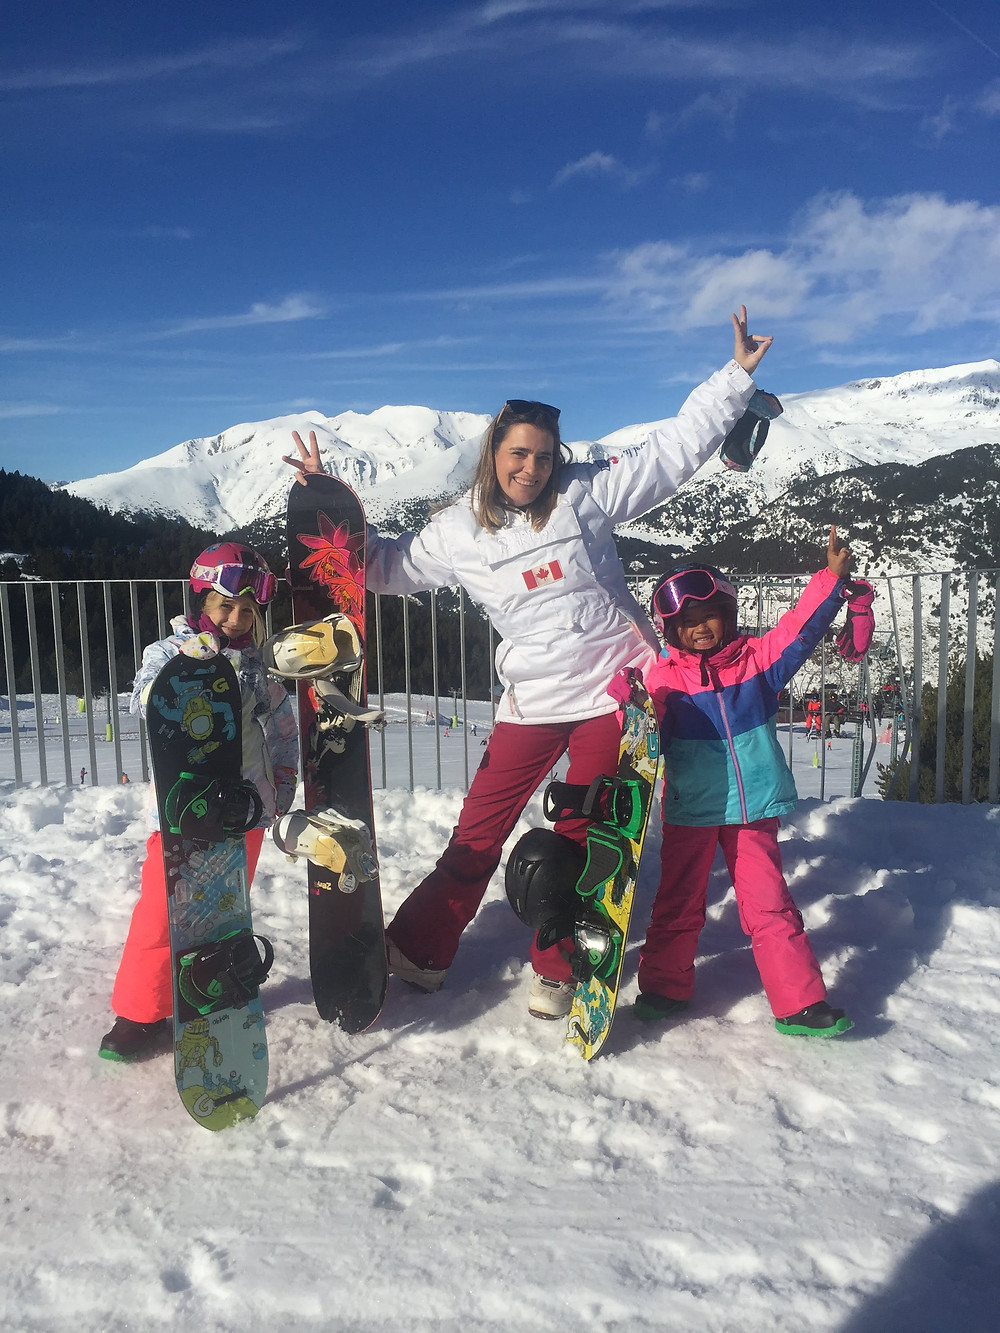 Hi I am Zazi Landman, a 7 year old snowboard girl. Here a photo of my best friend Cristina, her mother Elena and me, snowboarding in El Tarter - Grandvalira, Andorra for New Years Eve. December 2019 - January 2020.